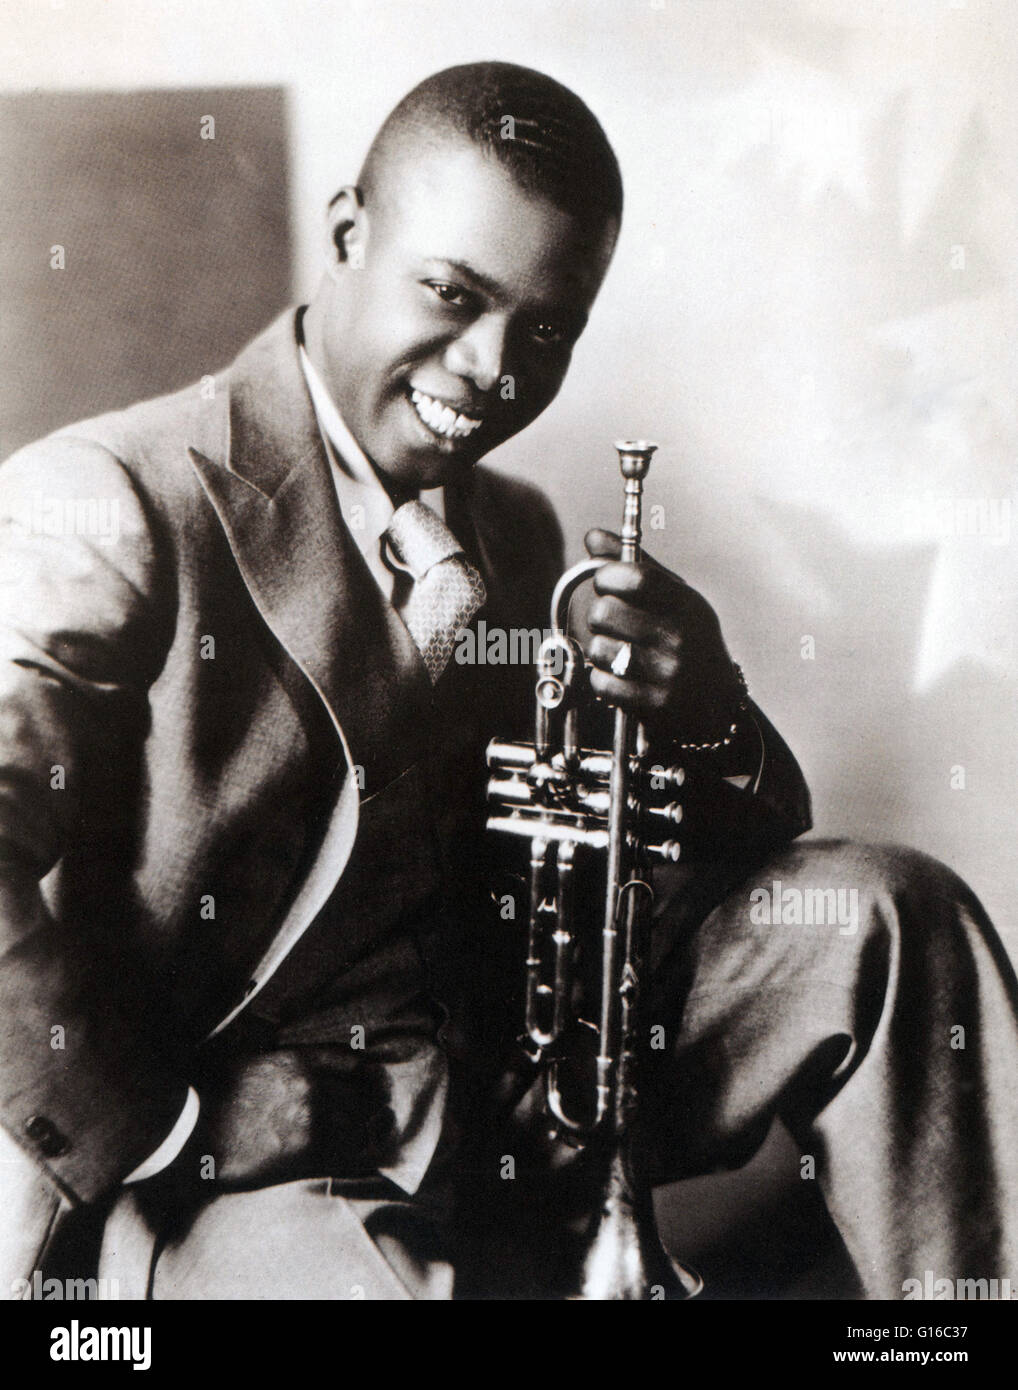 Armstrong circa 1930. Louis Armstrong (August 4, 1901 - July 6, 1971) was an American jazz trumpeter and singer. Stock Photo